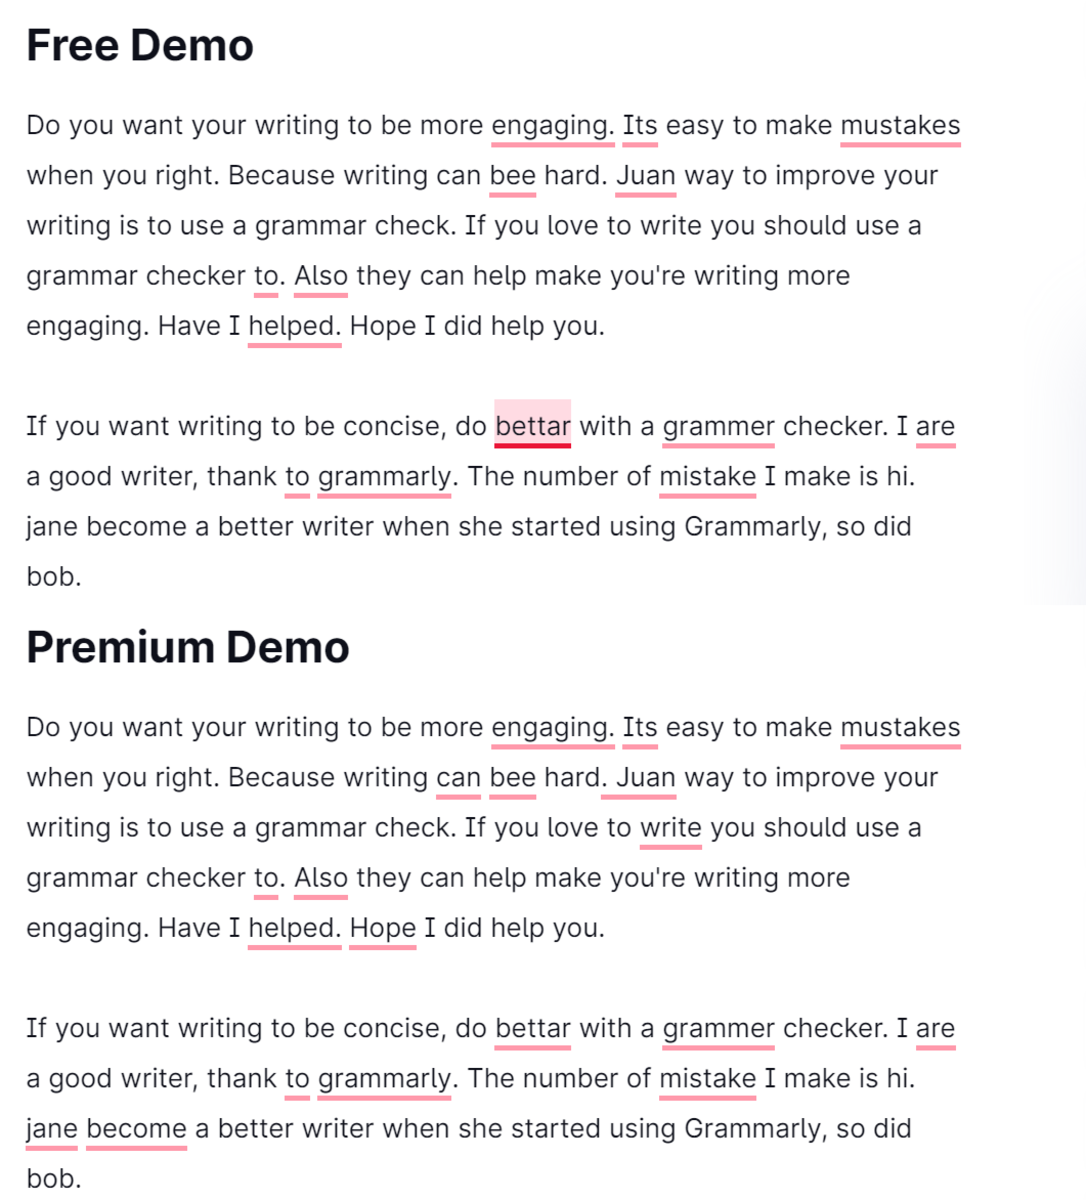 The Premium version of Grammarly offers more grammar and punctuation checks than the Free version